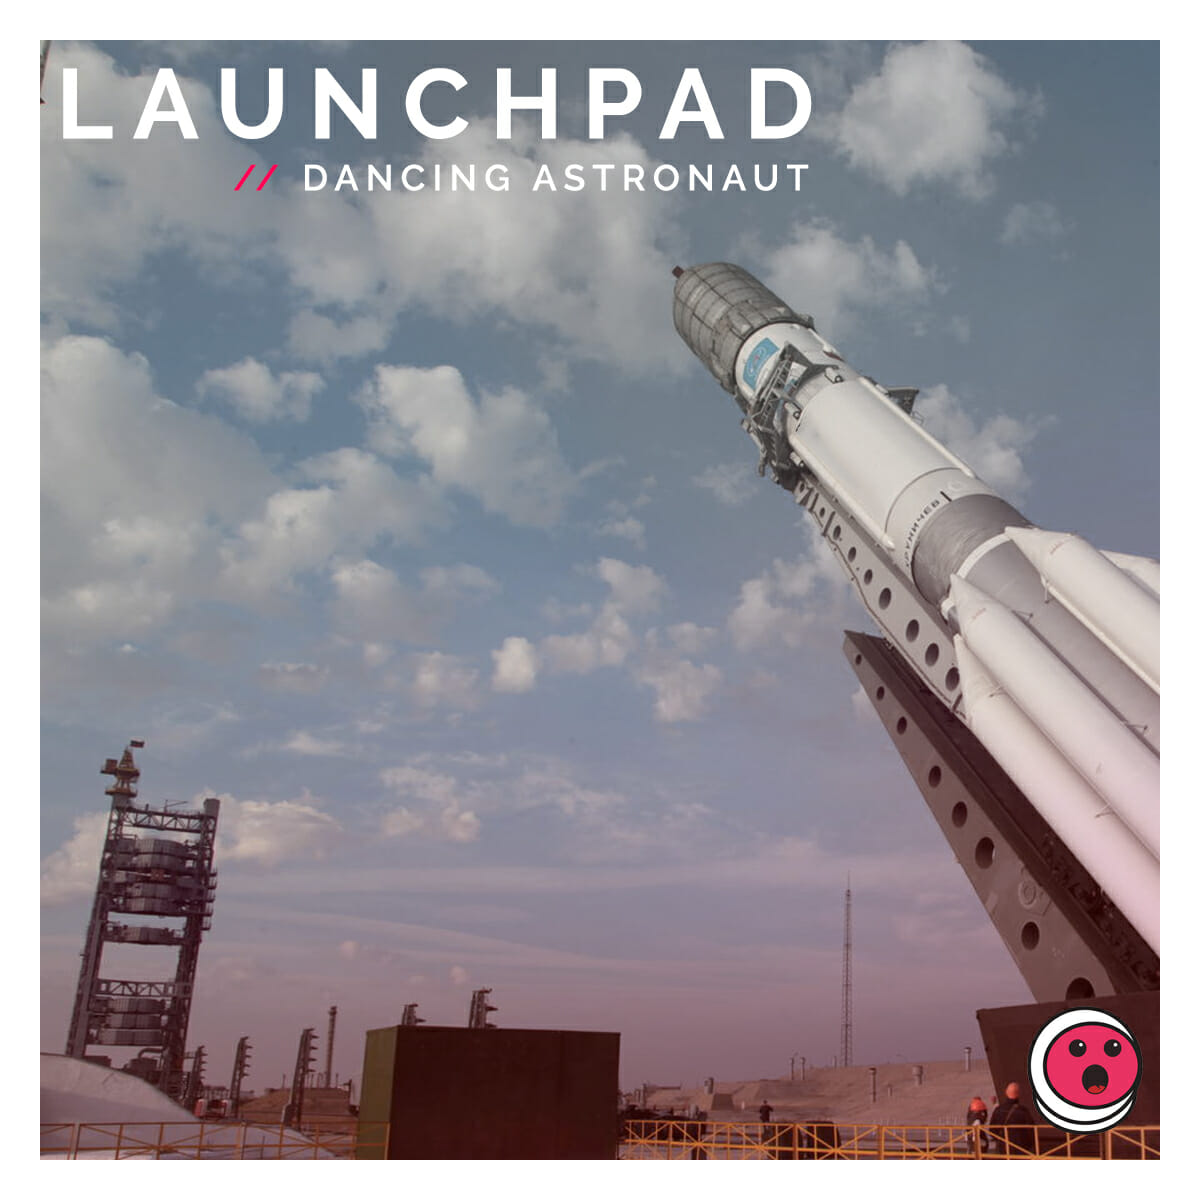 Launchpad: 13 trap and dubstep tracks that pack a punchLaunchpad 1